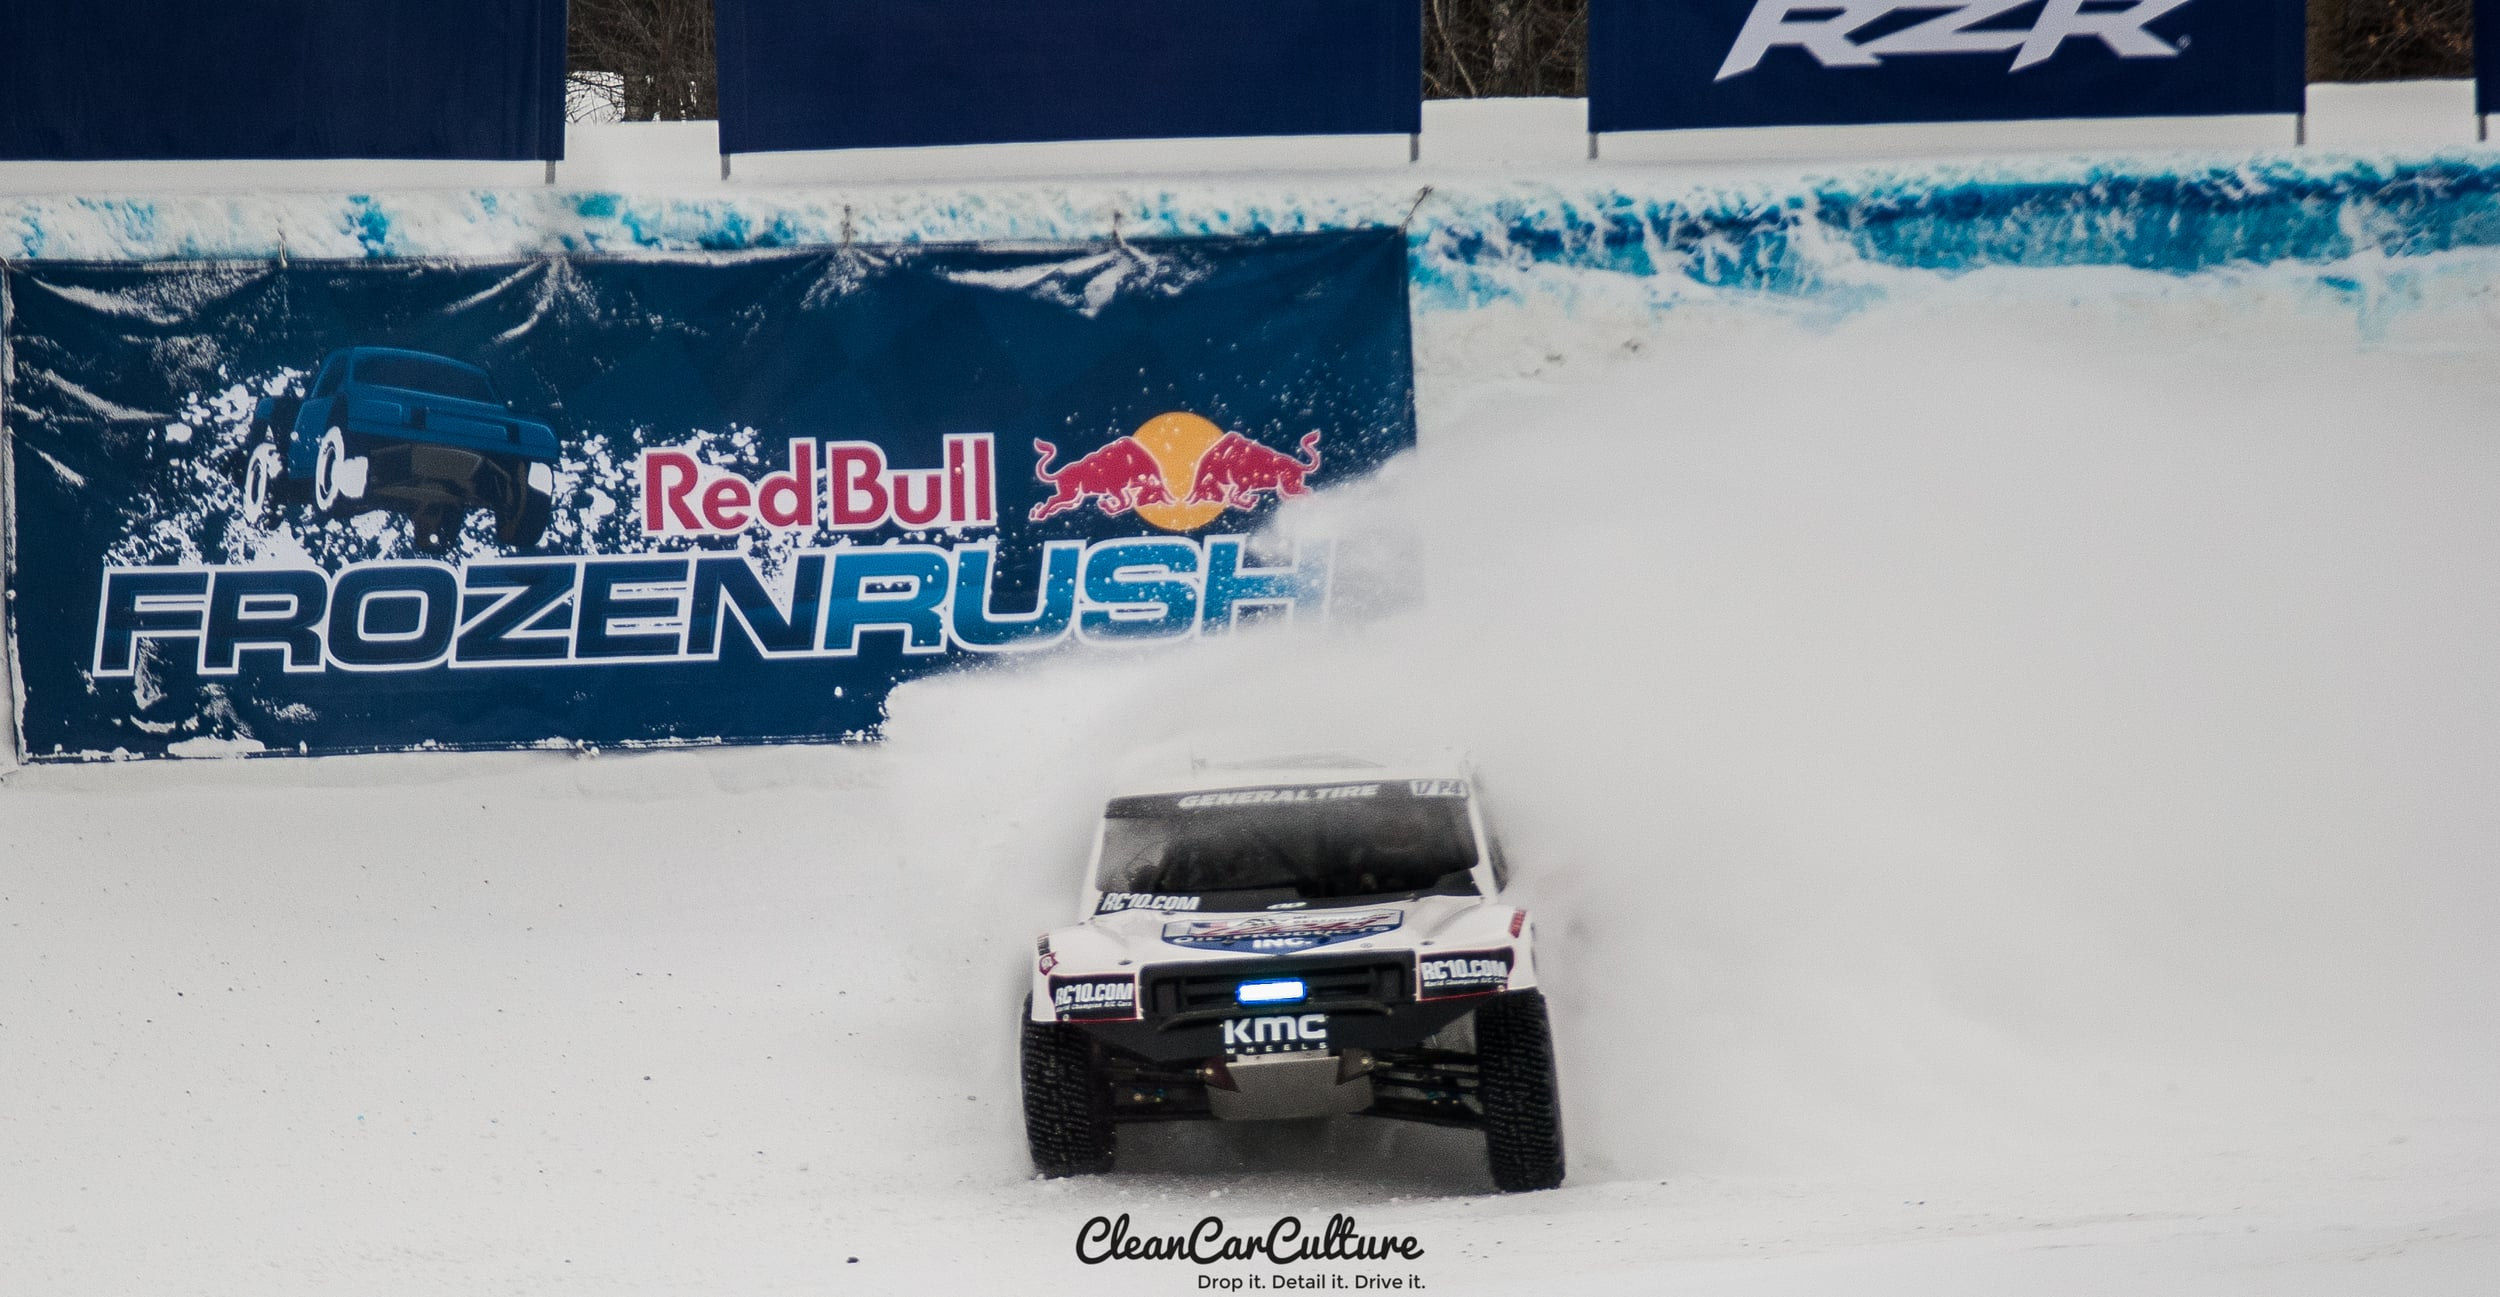 FrozenRush2016-0219.jpg